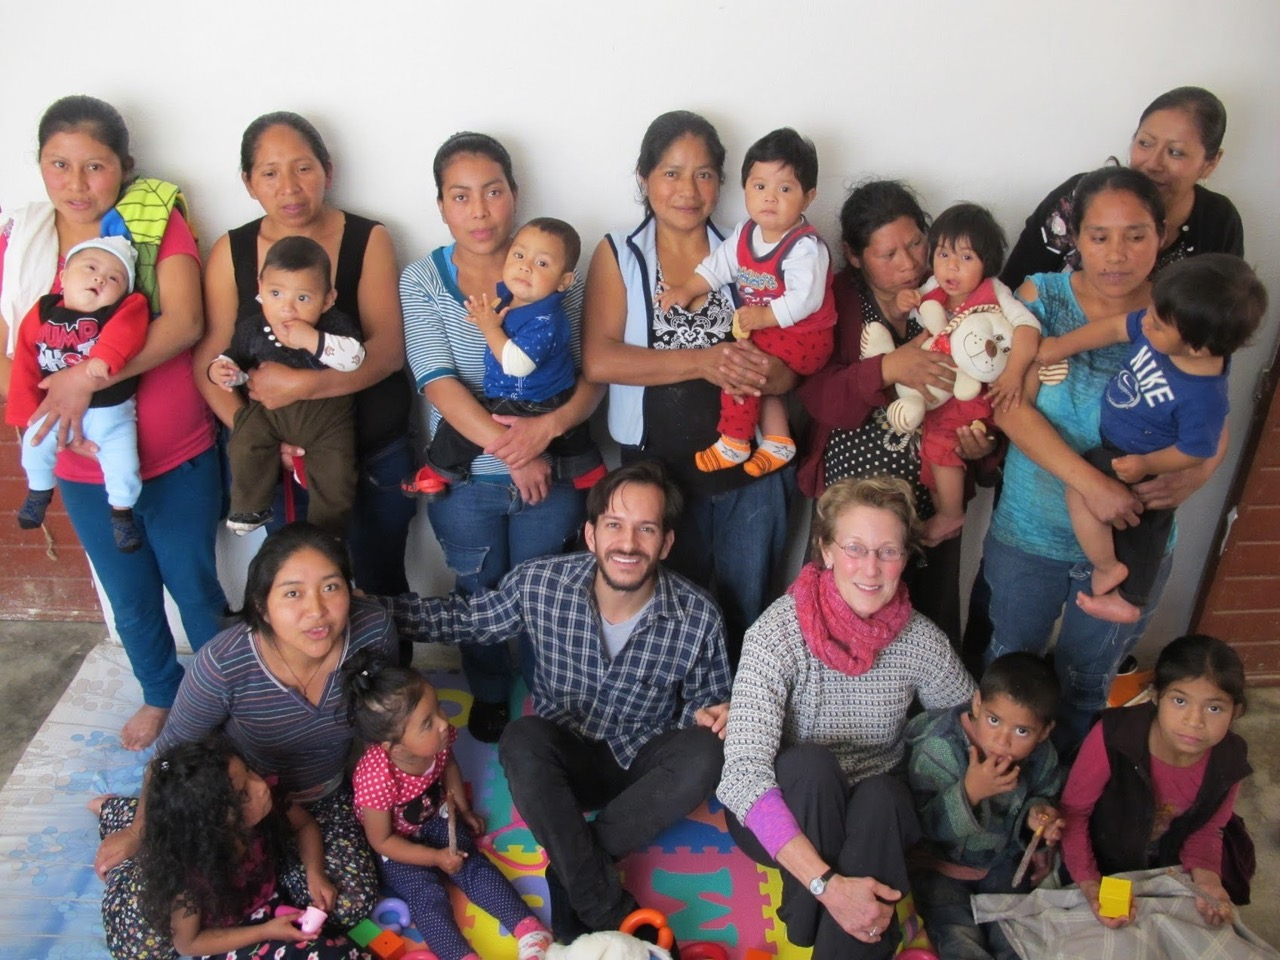 Susie Wood – Compañeros en Salud: Improving Healthcare in Chiapas